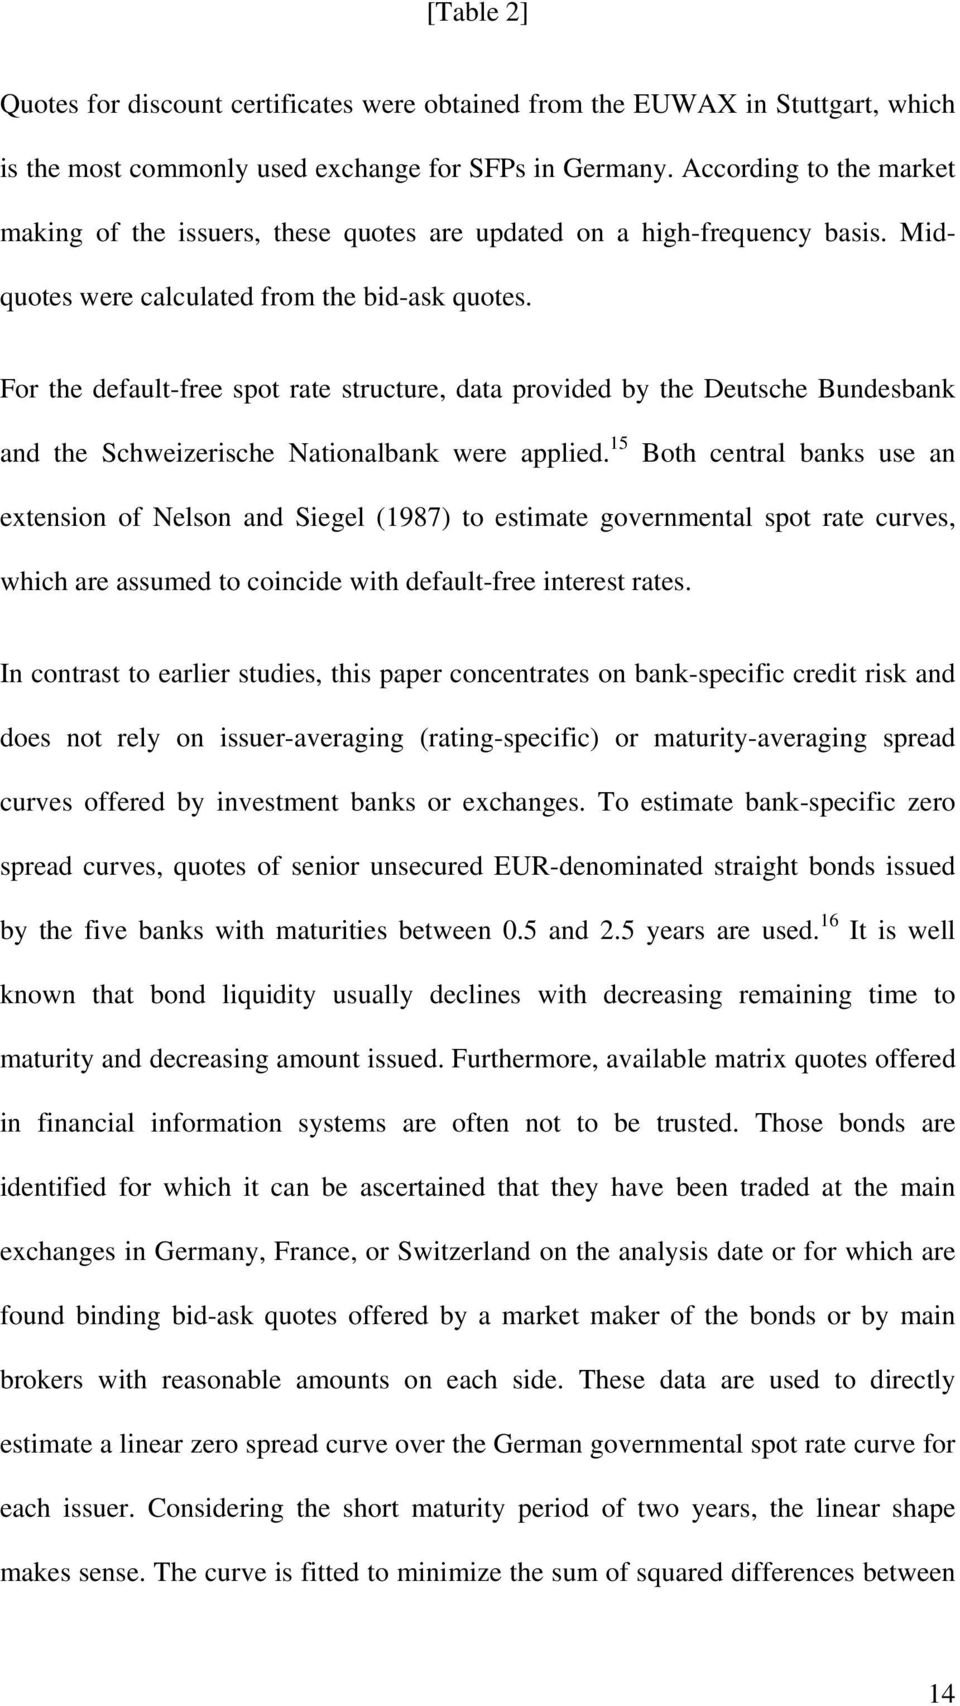 For the default-free spot rate structure, data provided by the Deutsche Bundesbank and the Schweizerische Nationalbank were applied.